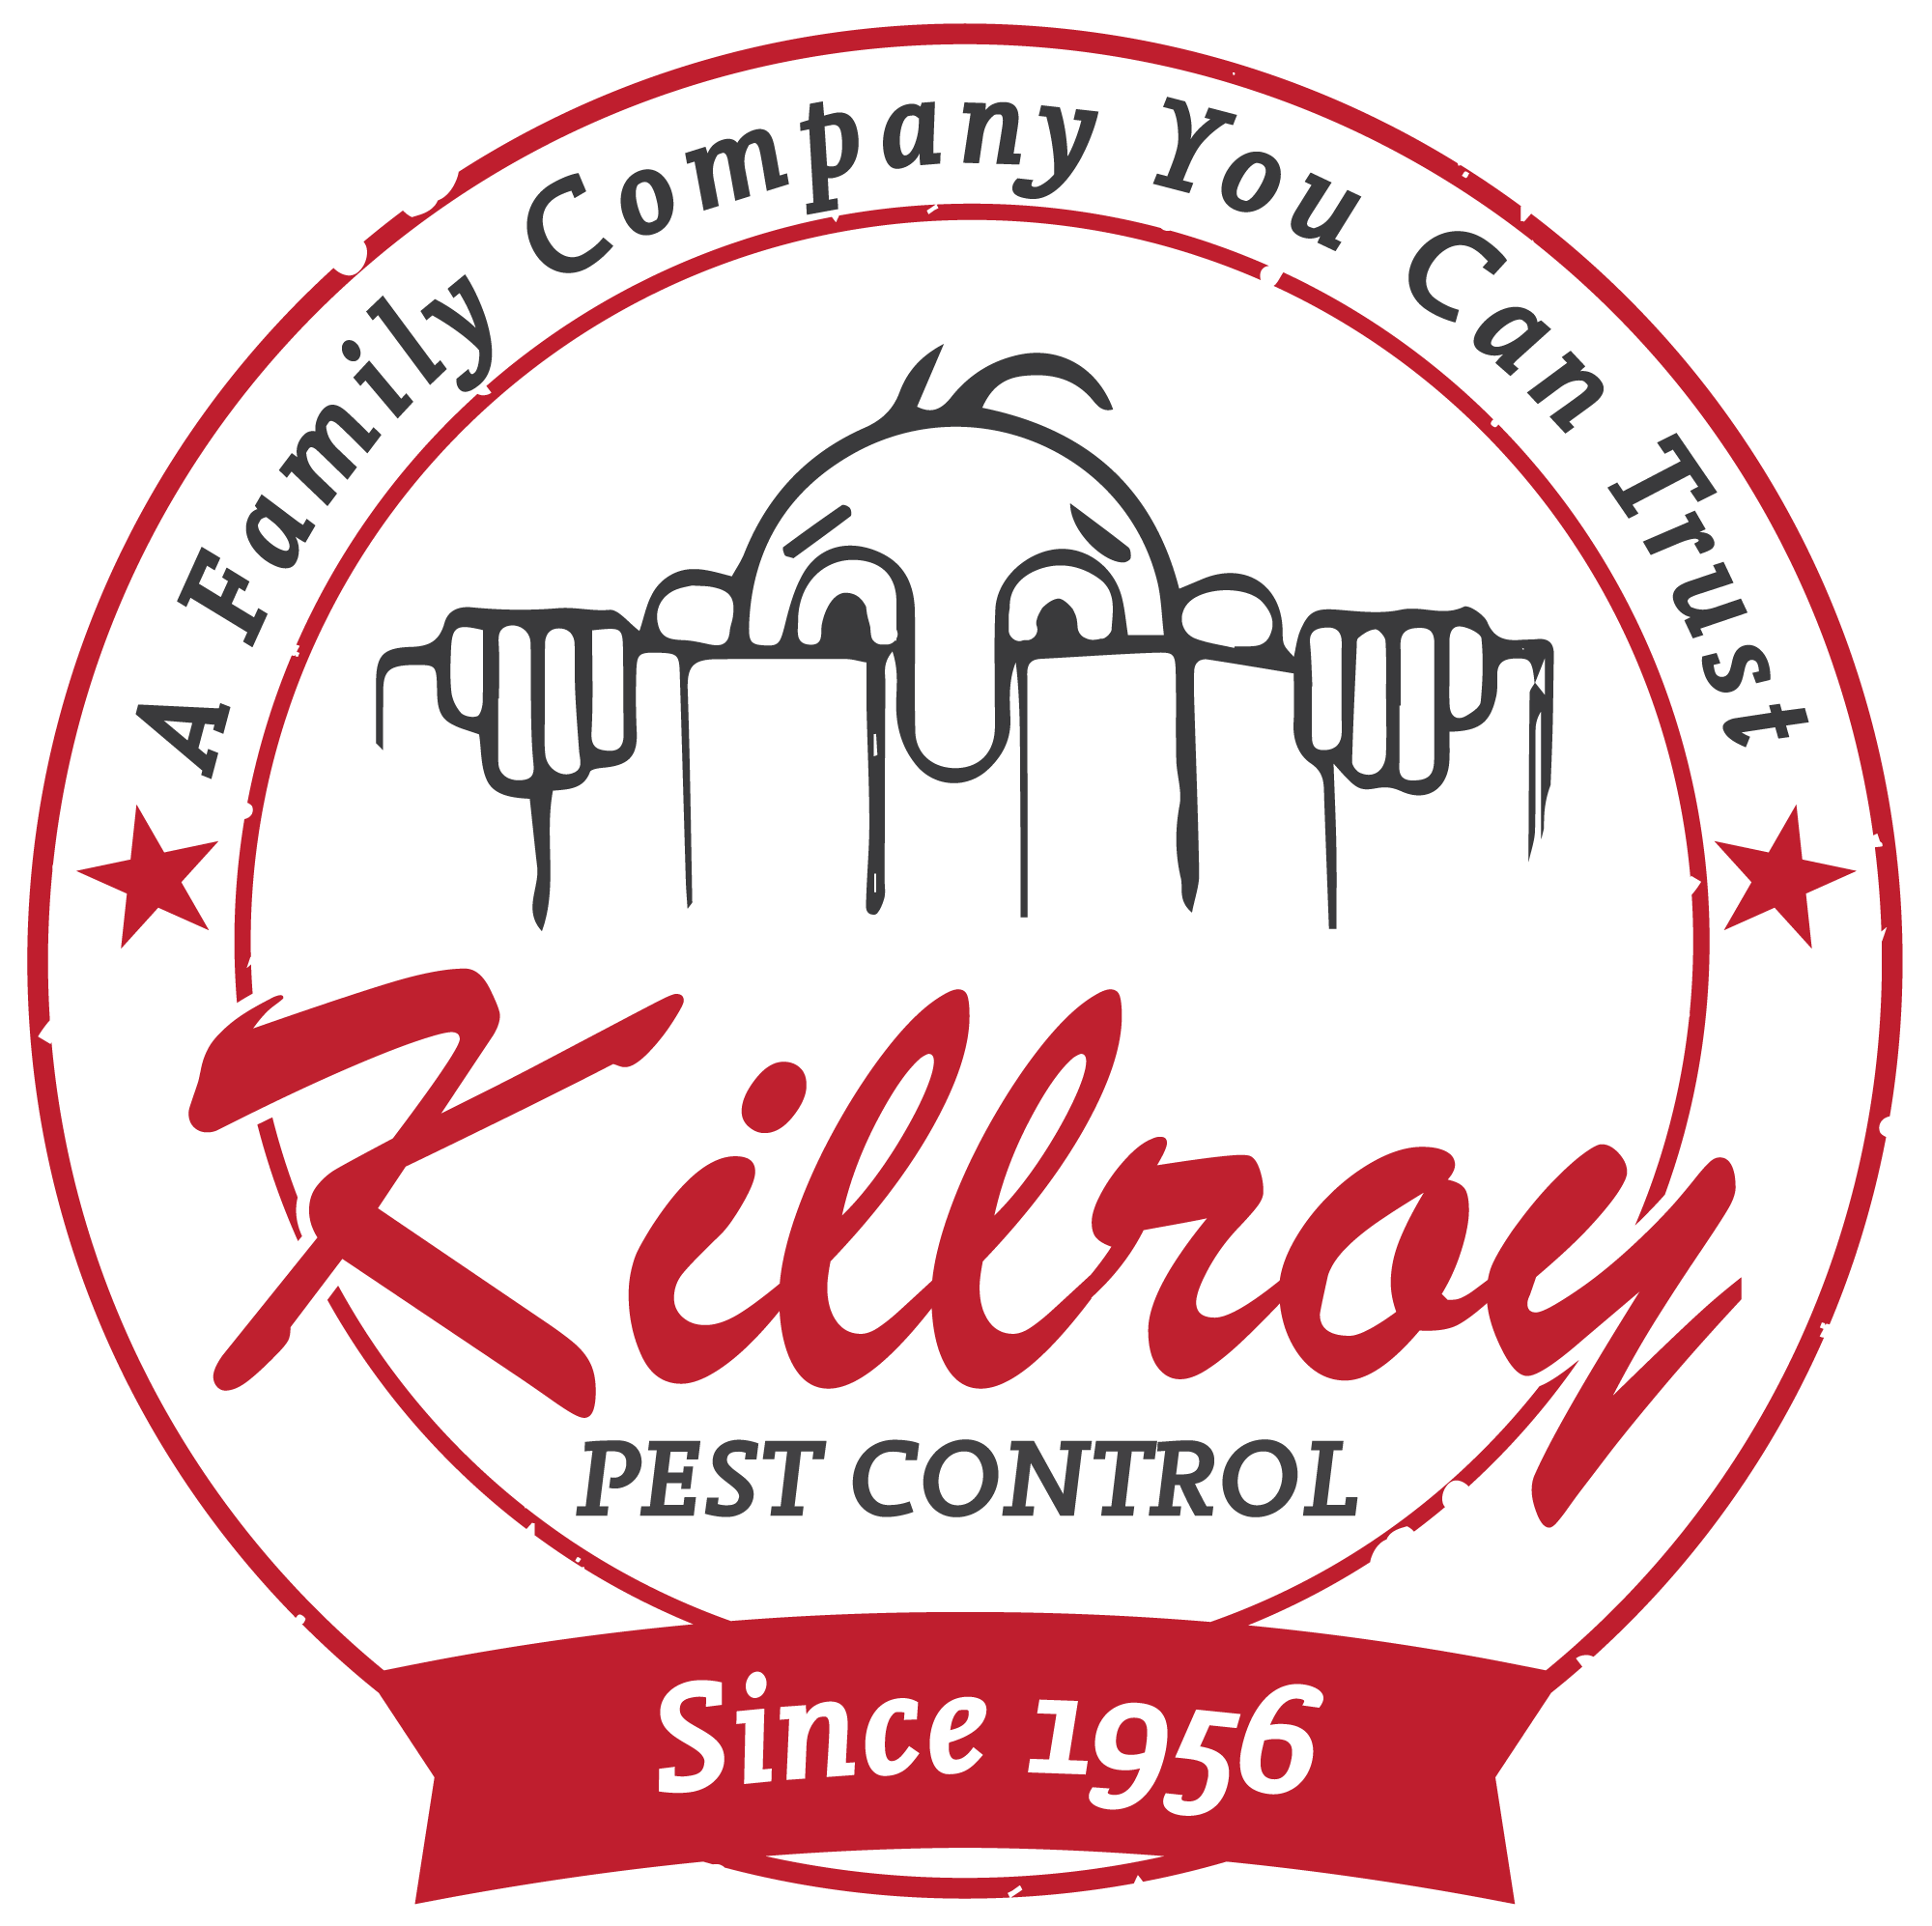 Killroy Pest Control since 1956